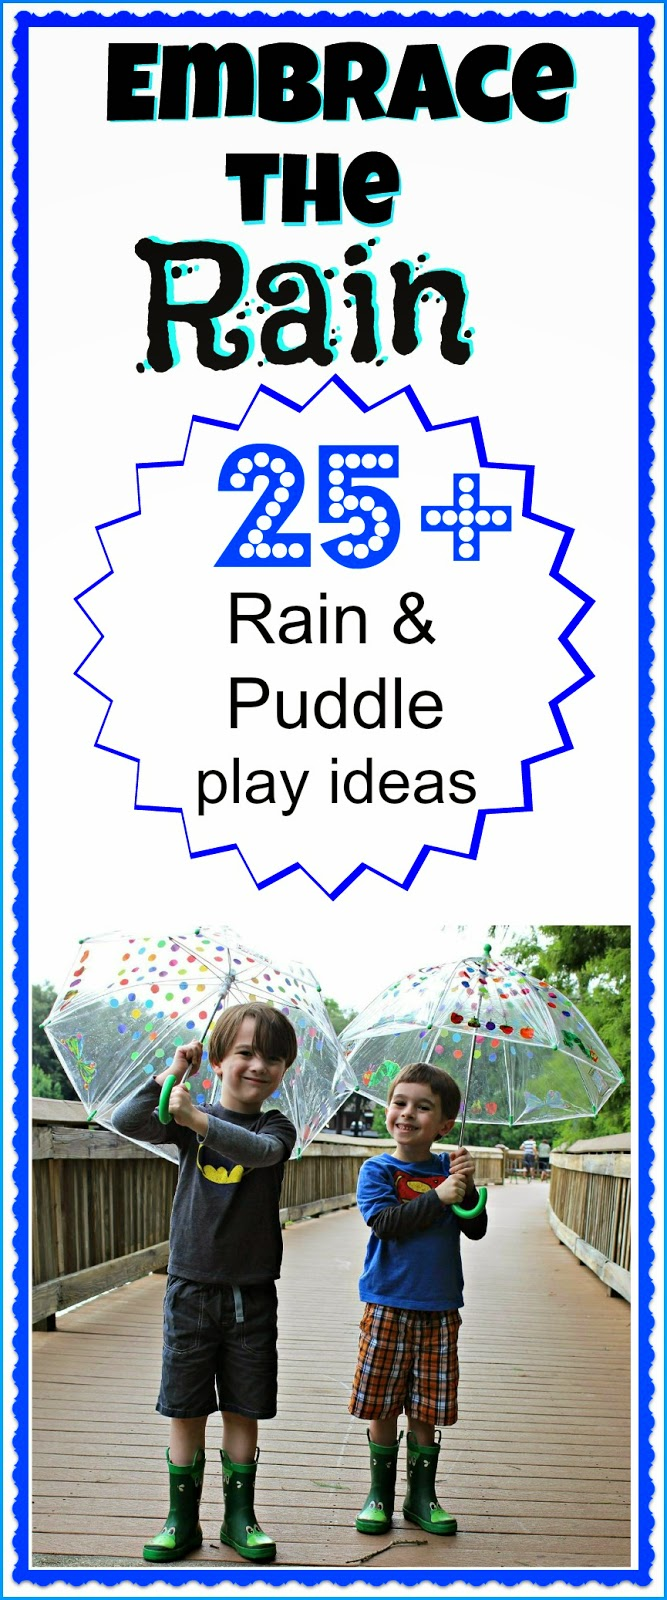 Great ideas for playing in the rain and puddles